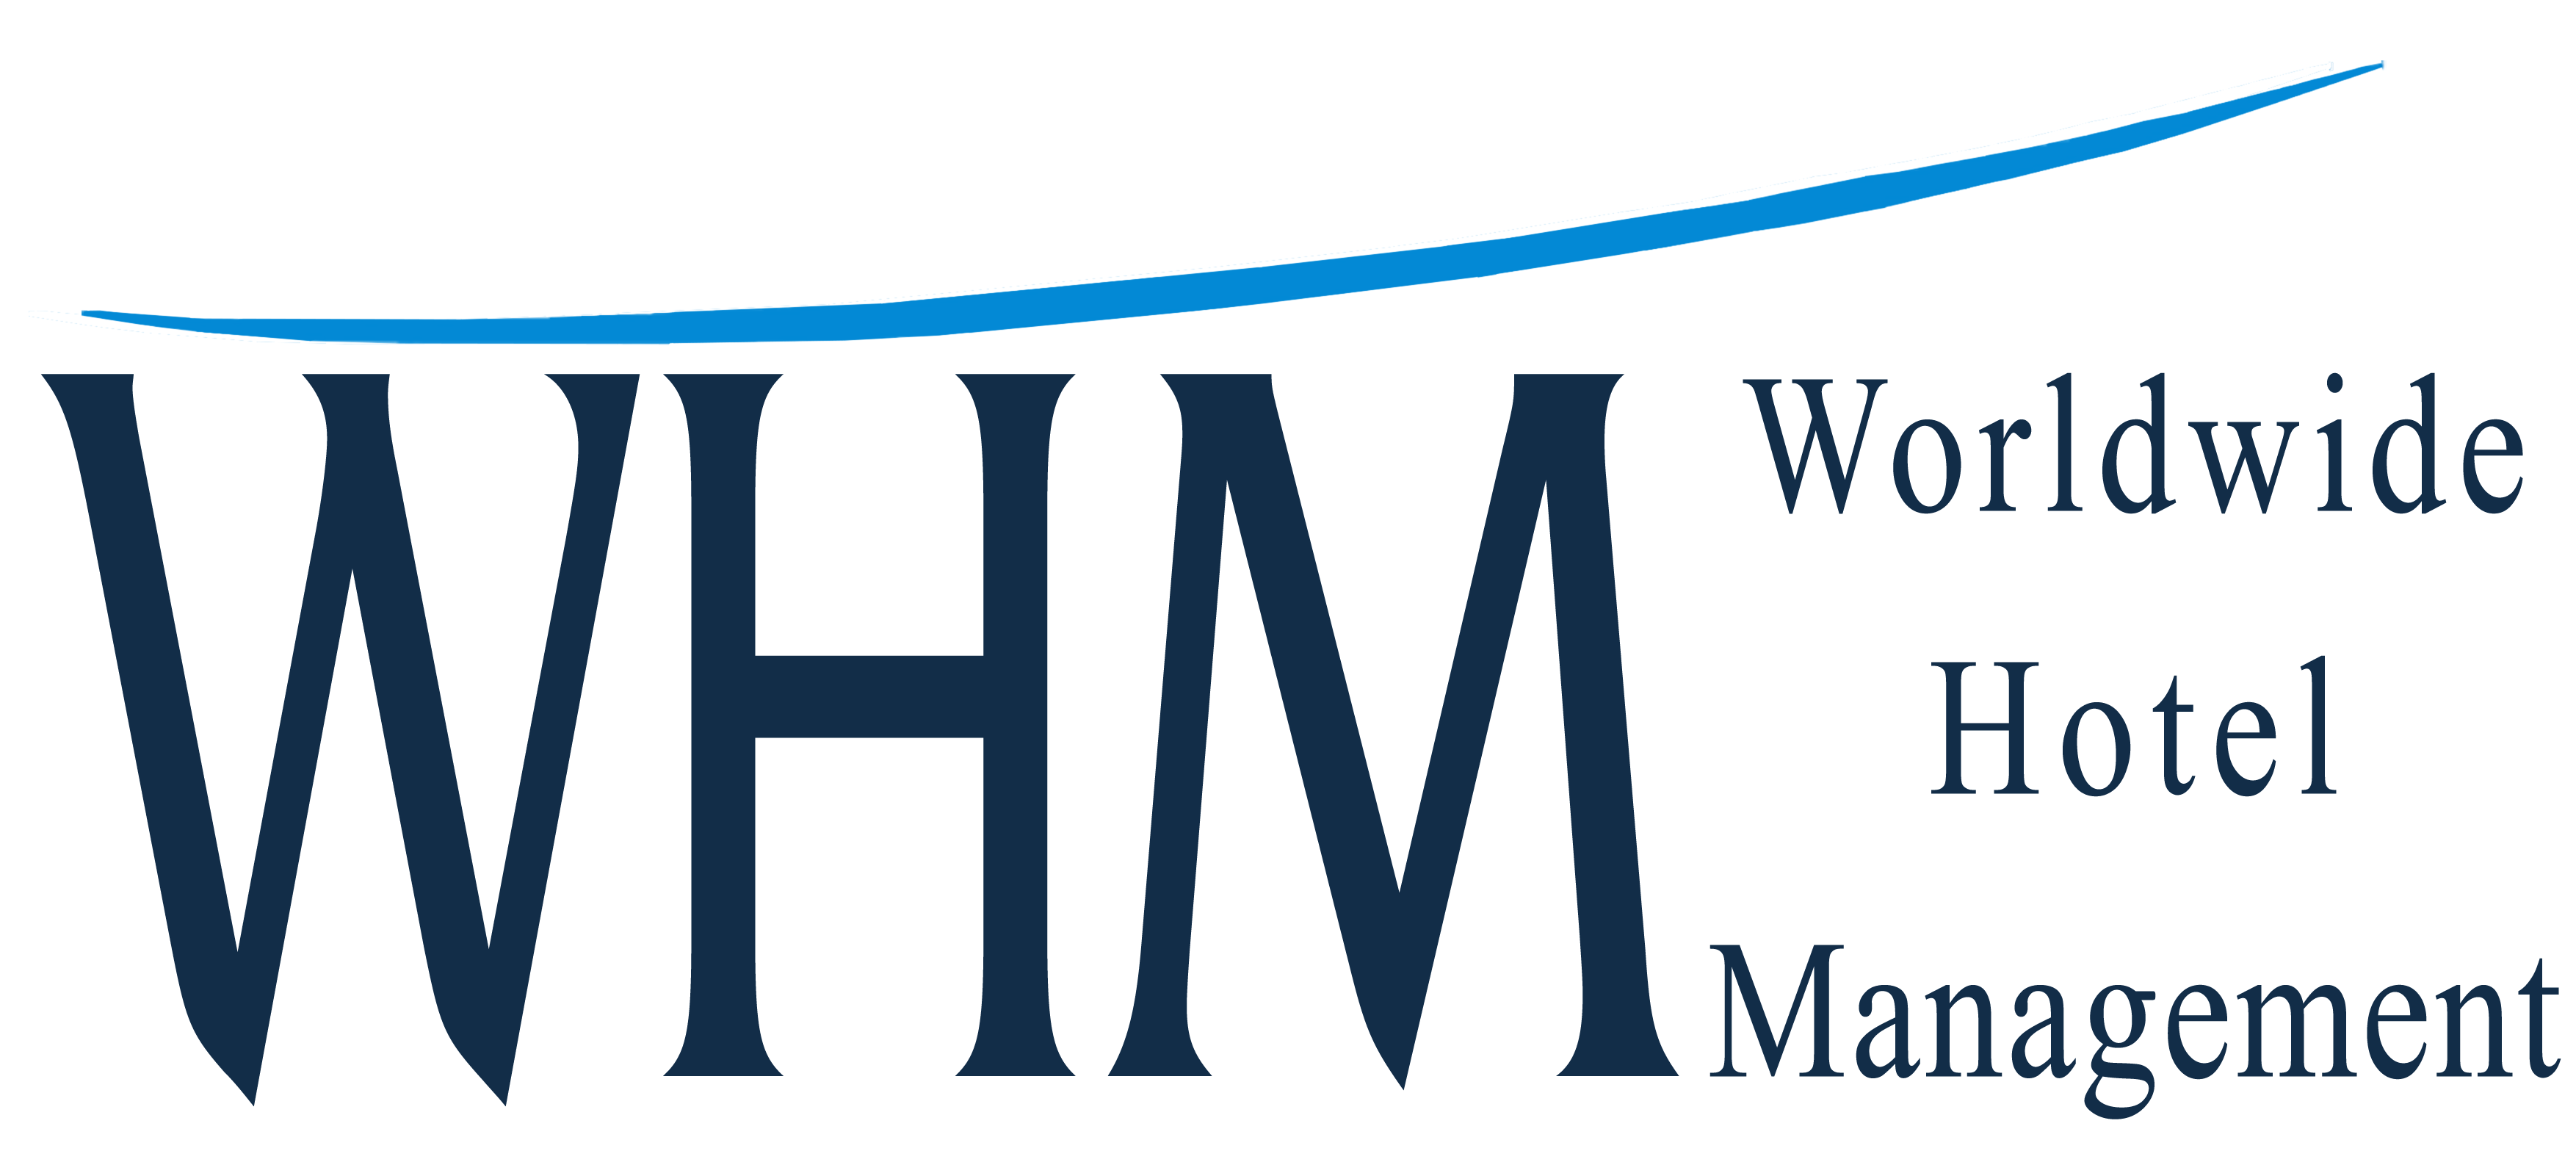 WWHM Worldwide Hotel Management